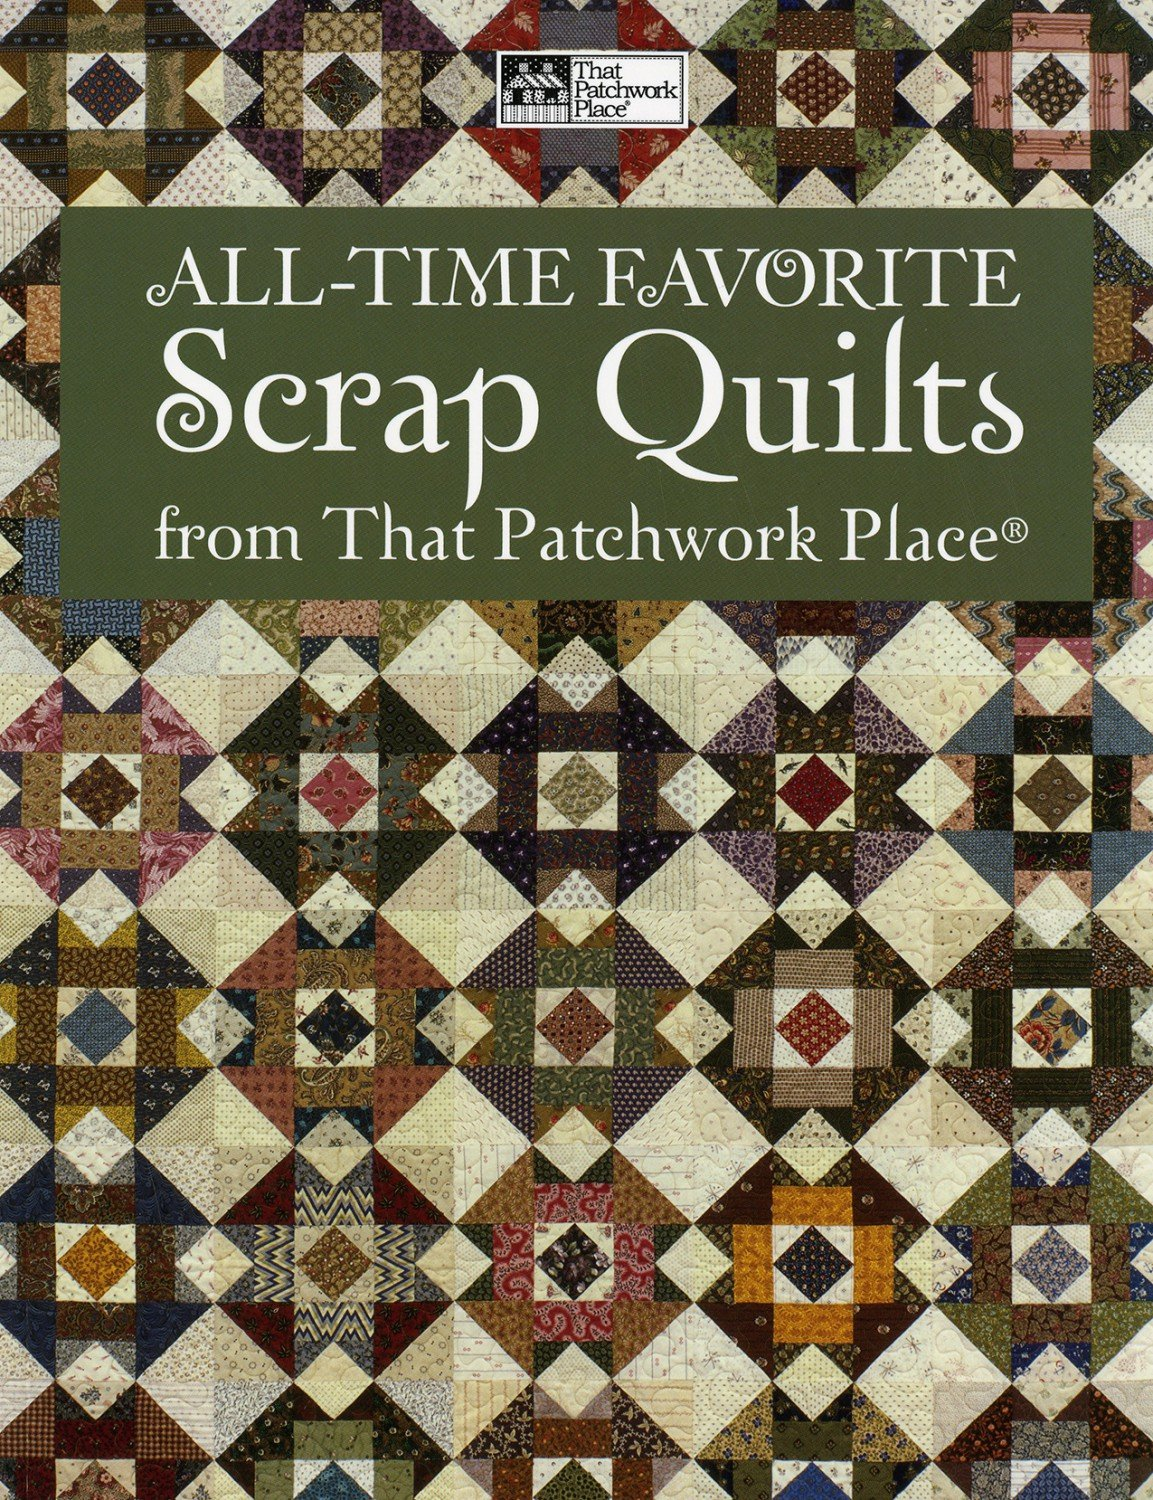 All-Time Favoite Scrap Quilts